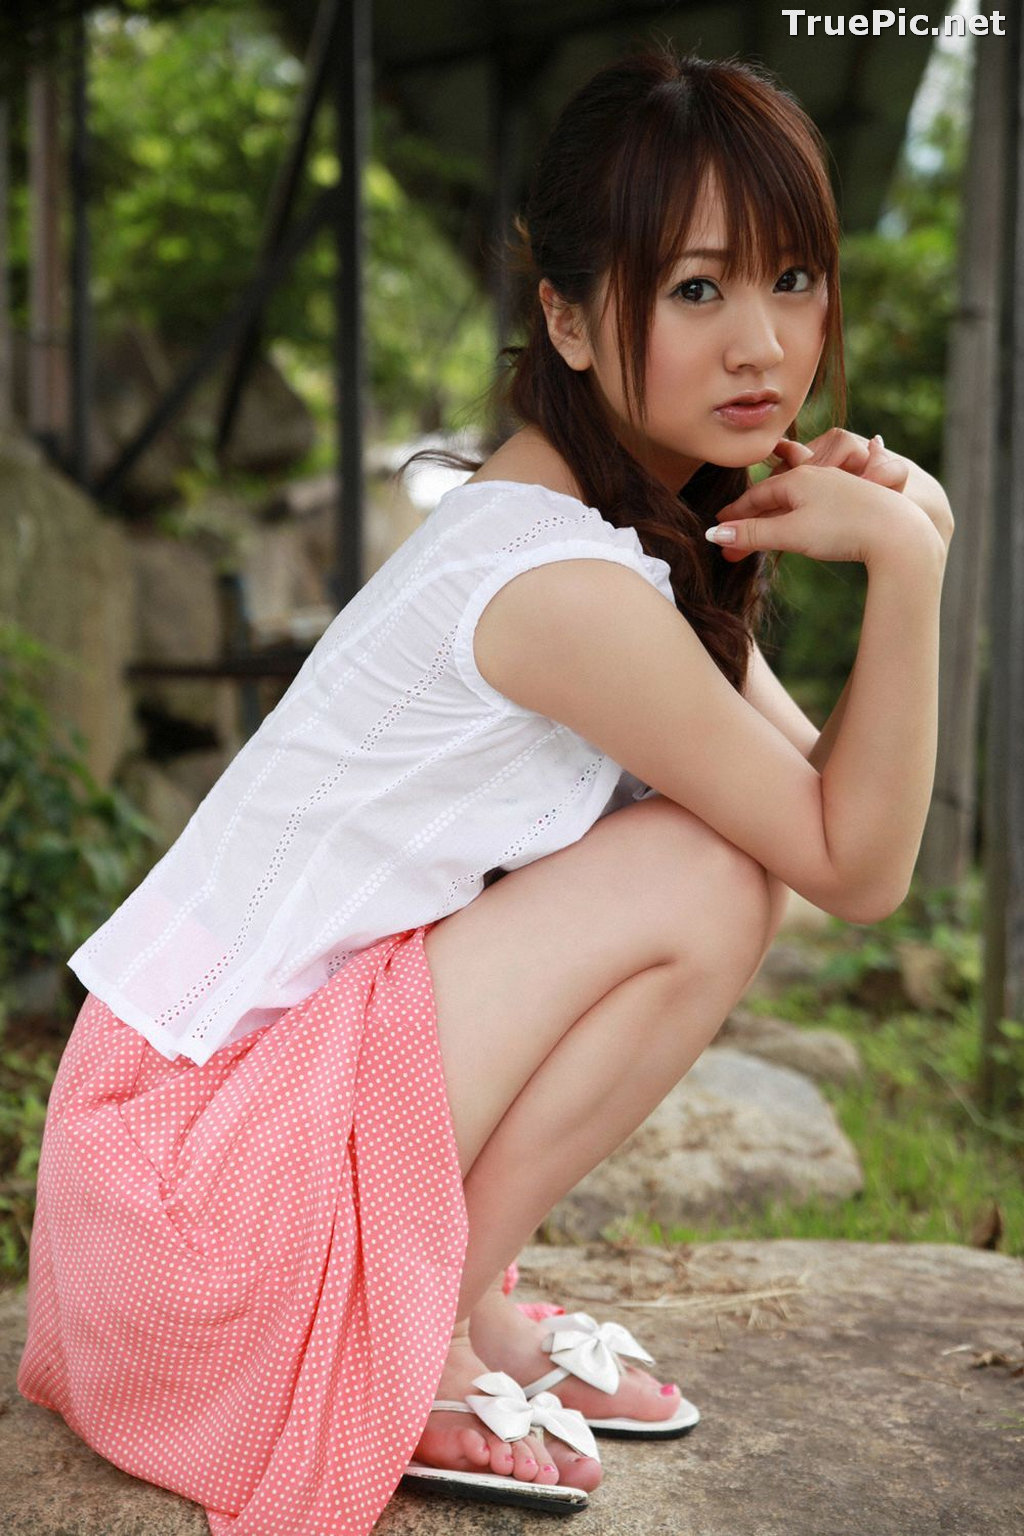 Image [YS-Web] Vol.328 - Japanese Tarento and Gravure Idol - Hamada Shoko - TruePic.net - Picture-2